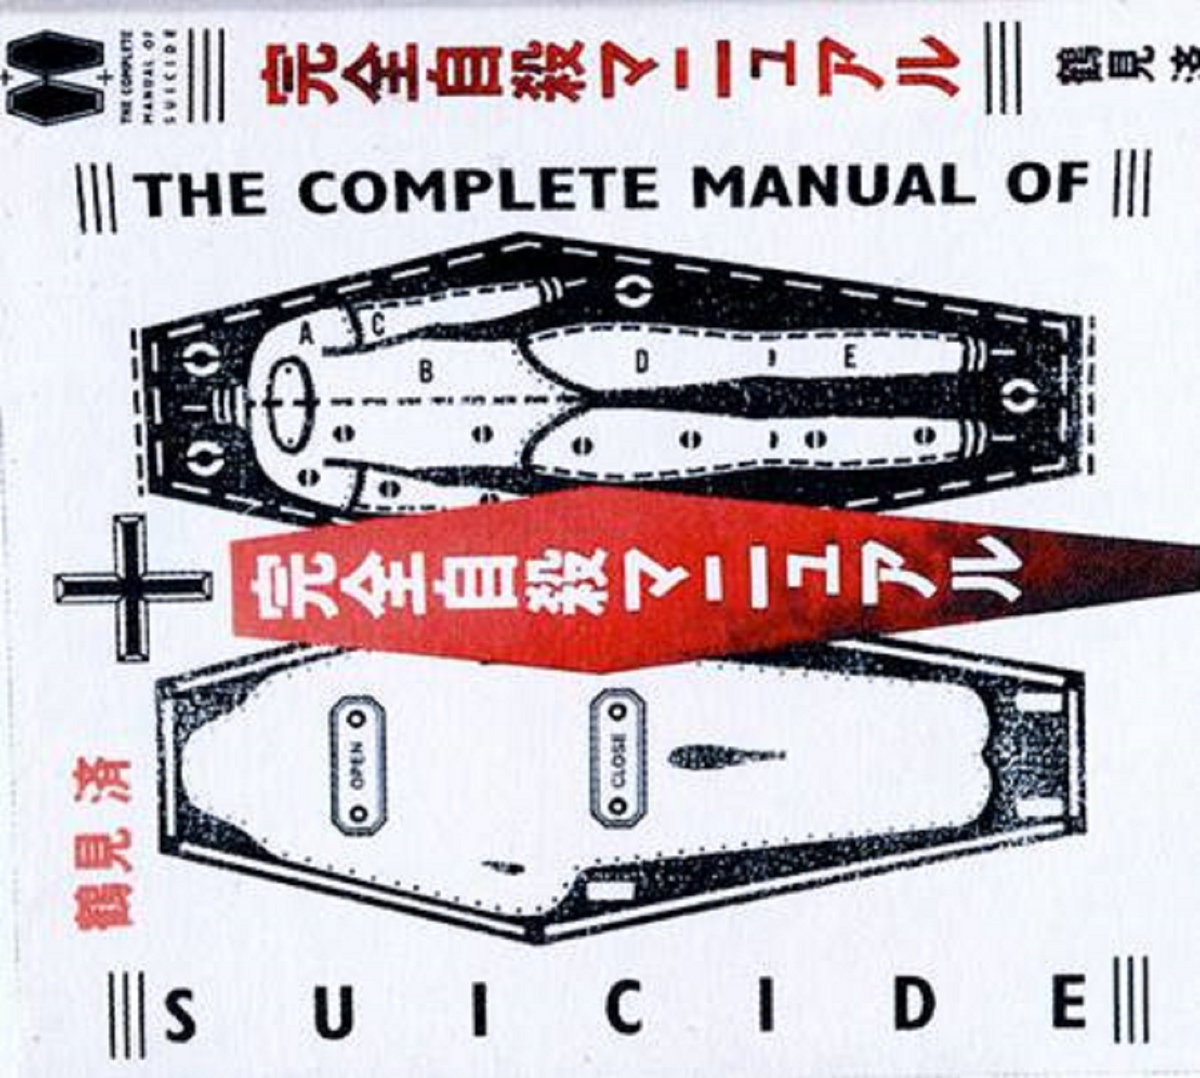 Ян-станислав ленц want: the complete manual of suicide.